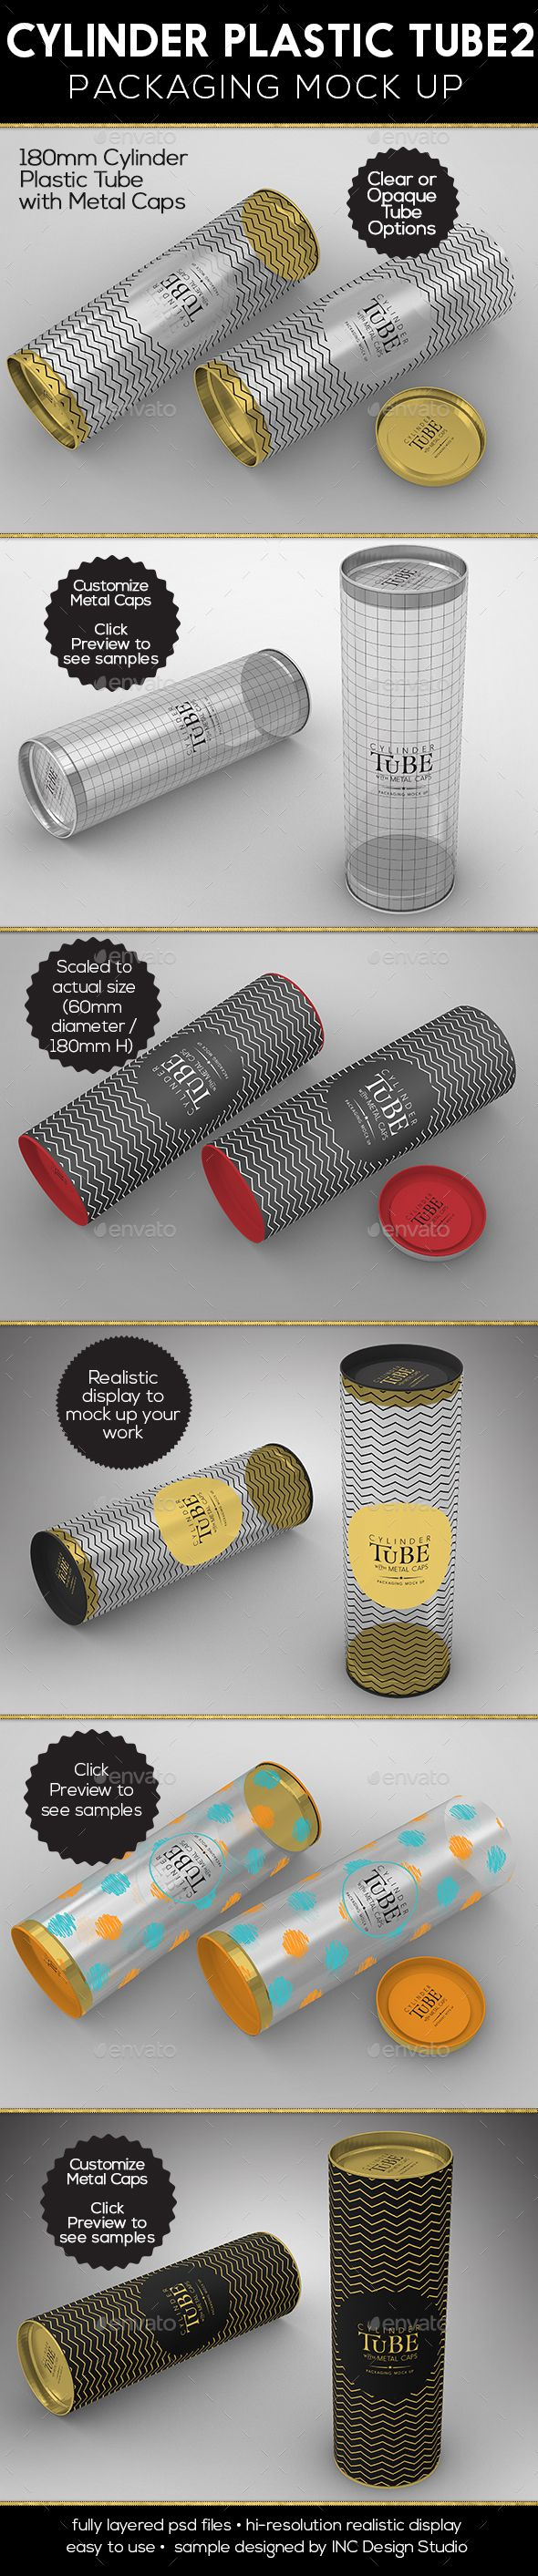 Cylinder 180mm PVC Tube Packaging with Metal Caps - #Packaging Product #Mock-Ups Download here: https://graphicriver.net/item/cylinder-180mm-pvc-tube-packaging-with-metal-caps/19530553?ref=alena994